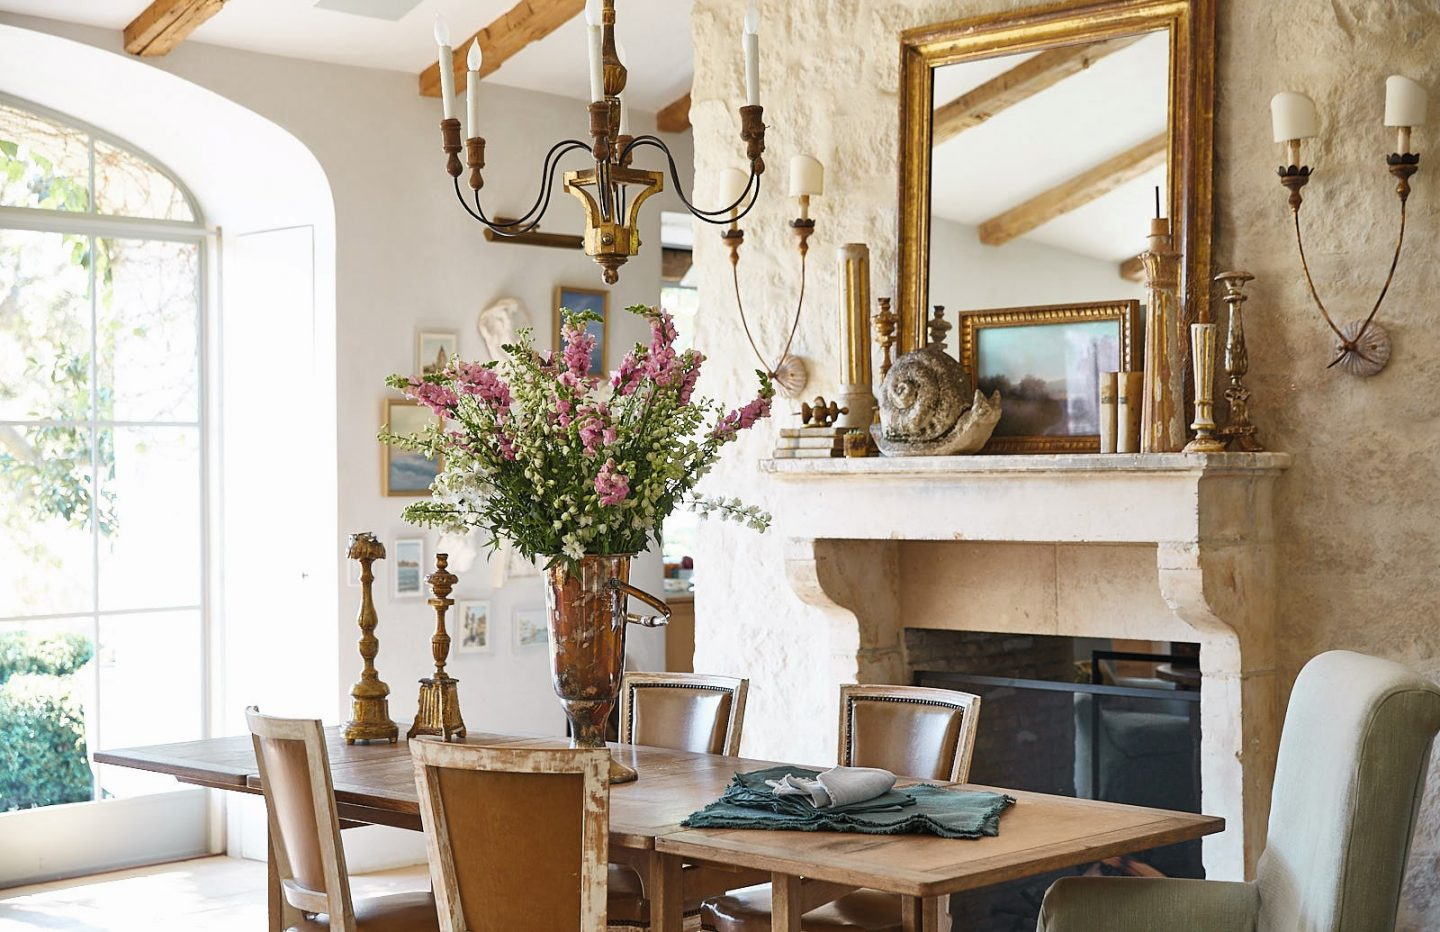 Patina Living photo of dining room with limestone French mantel, French farmhouse chandeliers, plaster walls, and rustic modern farmhouse style. Brooke Giannetti and Steve Giannetti designed the space at Patina Farm. Photo by Victoria Pearson. #patinafarm #limestonefireplace #frenchfarmhouse #interiordesign #modernfarmhouse #diningrooms